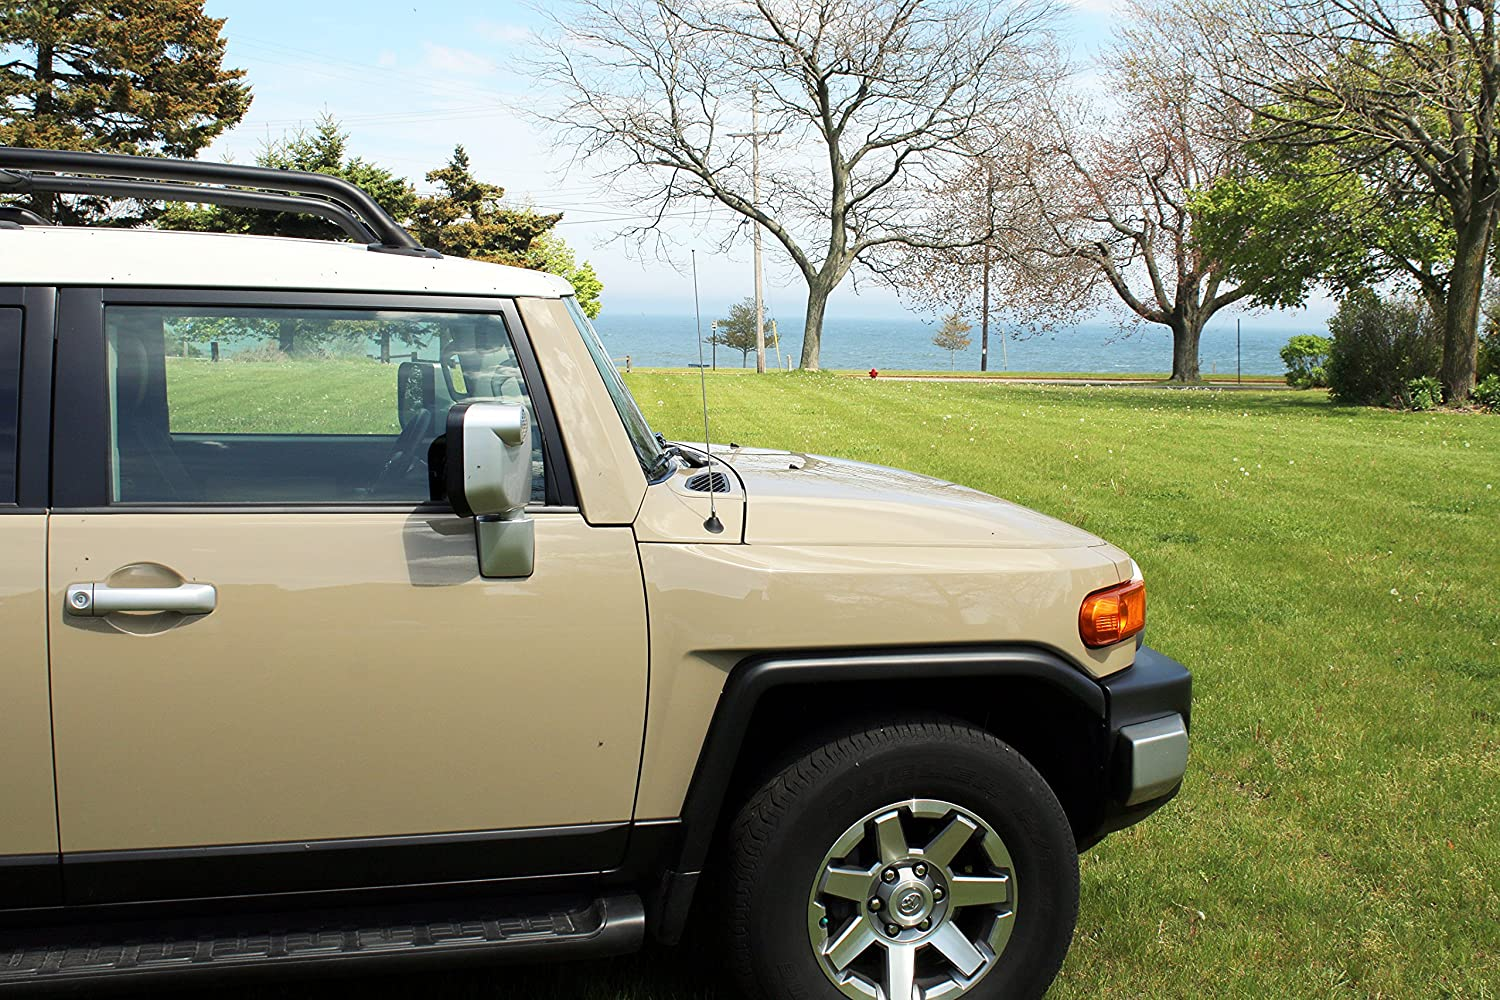 JL 2007-2020 4 Inch Purple Aluminum Antenna is Compatible with Jeep Wrangler JK Gladiator AntennaMastsRus Made In USA